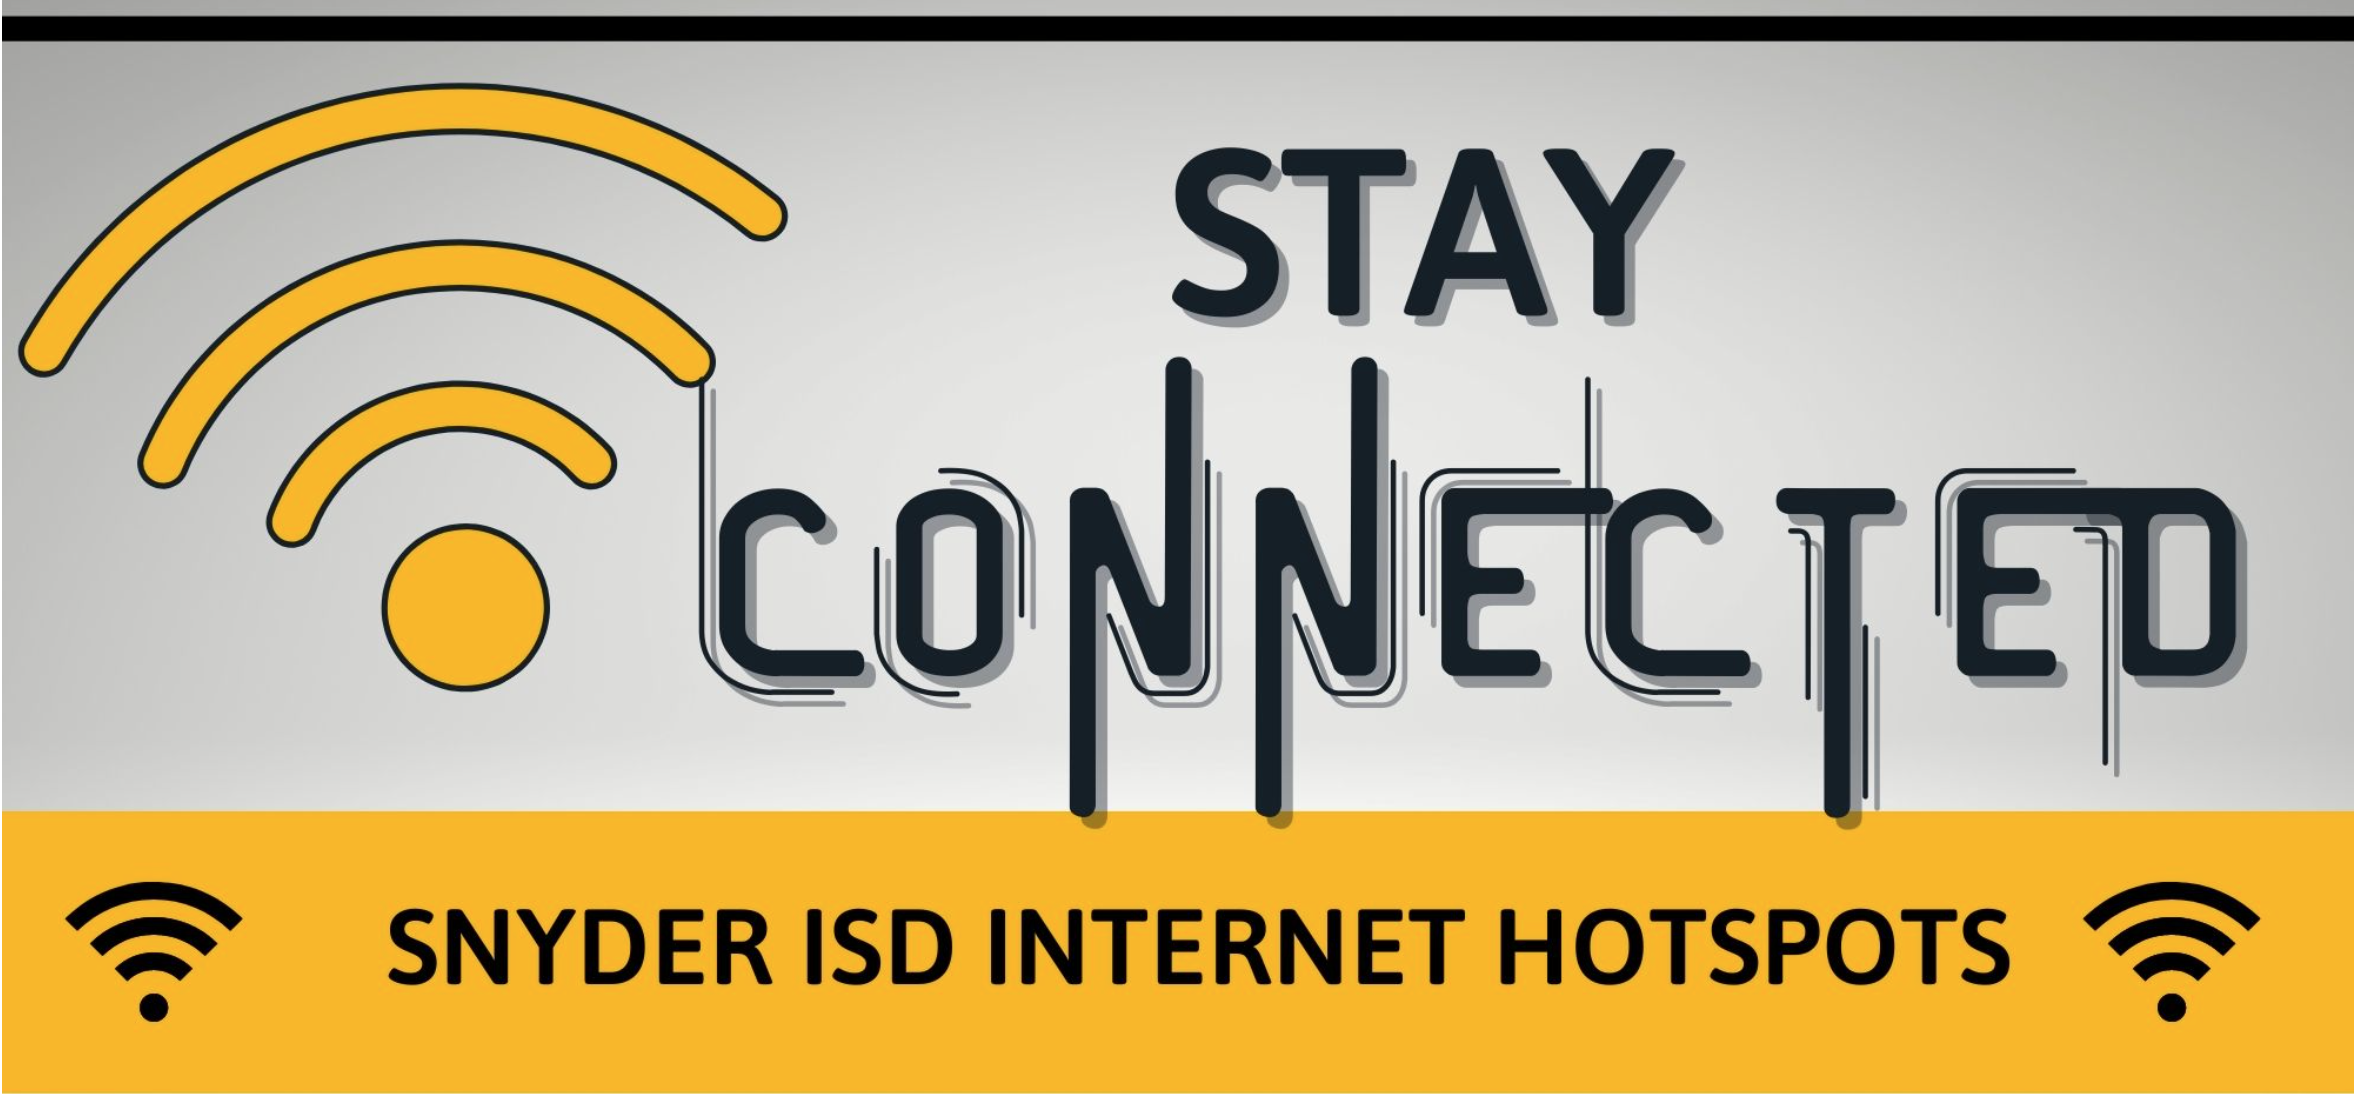 Stay Connected Snyder ISD WIFI Hotspots